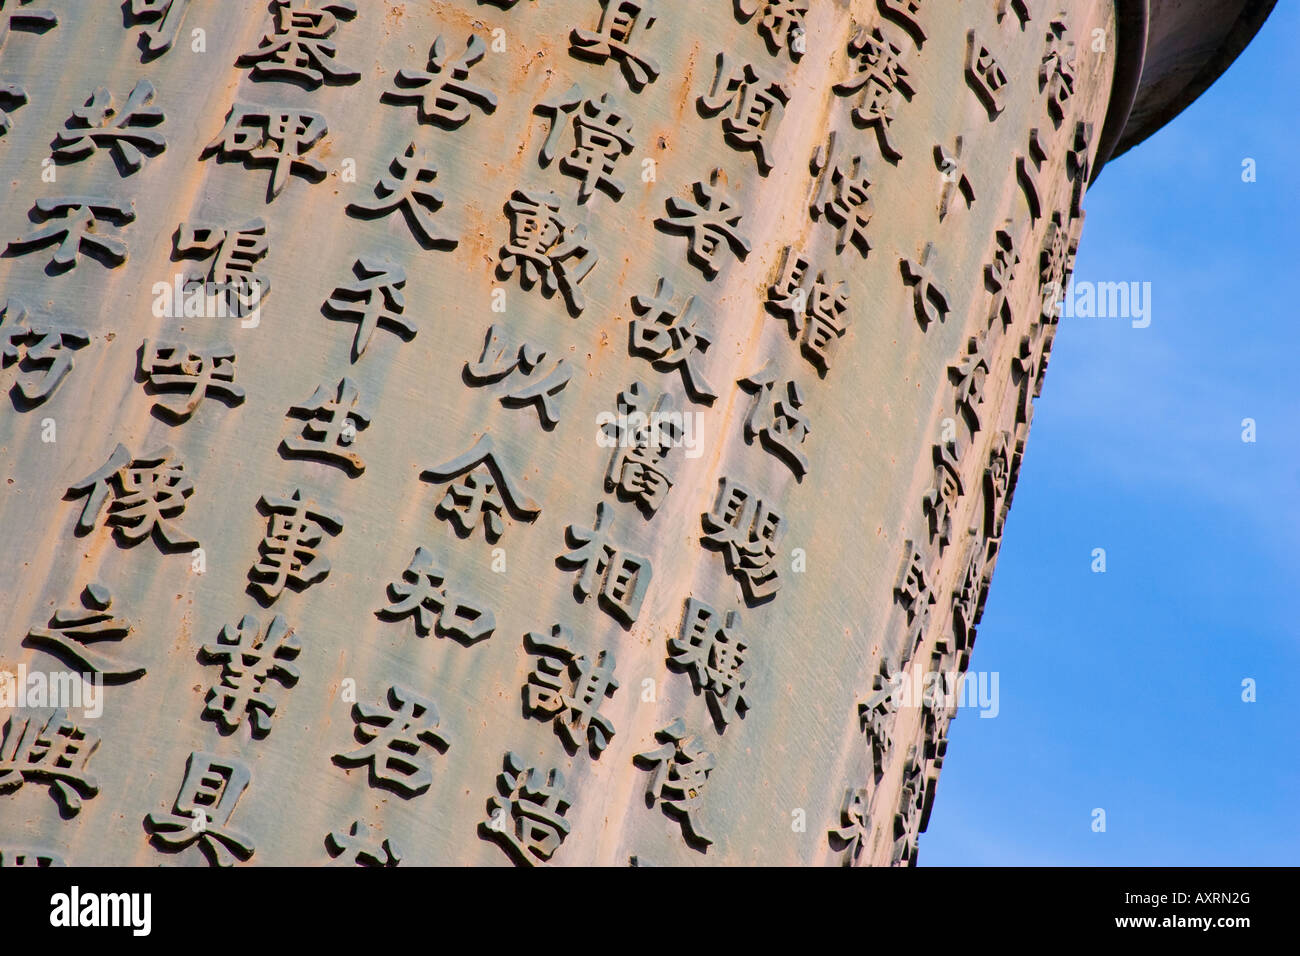 Kanji characters inscribed on structure at Yasukuni Jinja shrine commemorating those who died in war - Stock Image